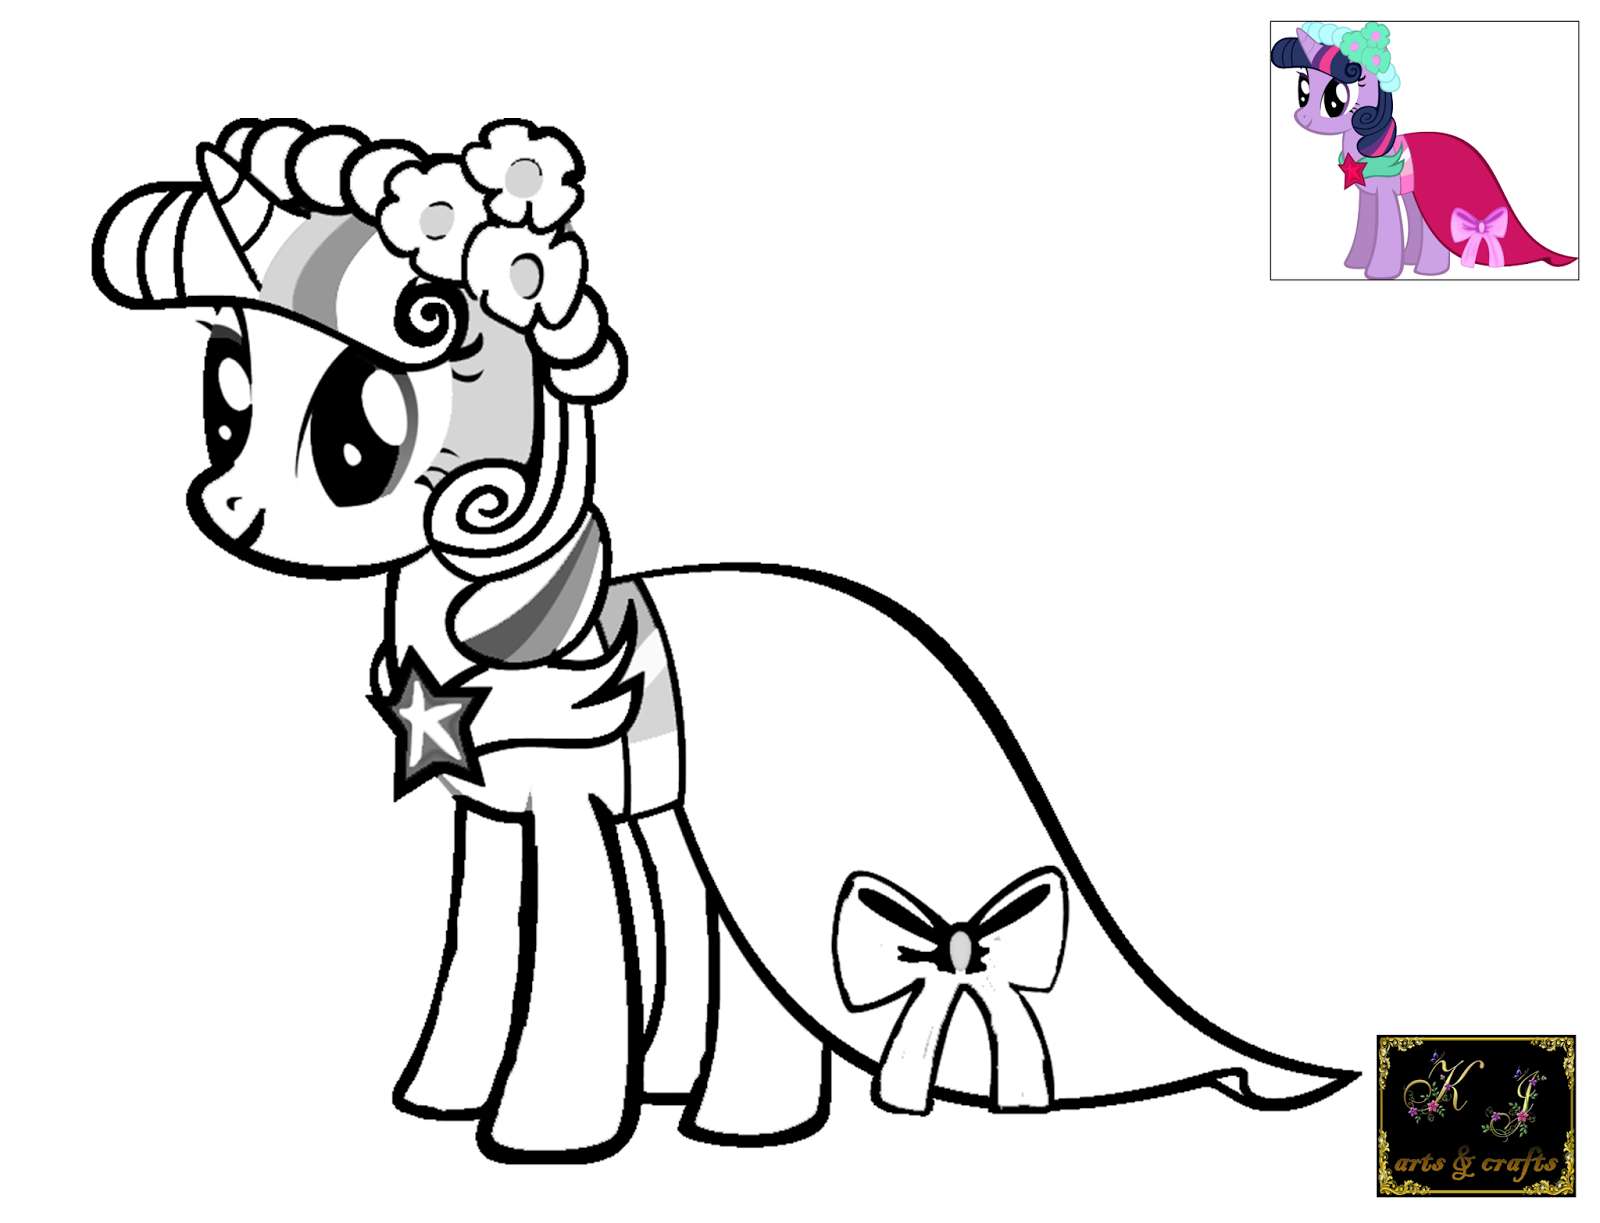 Coloring Pages Of Princess Twilight Sparkle : Princess twilight sparkle alicorn coloring pages